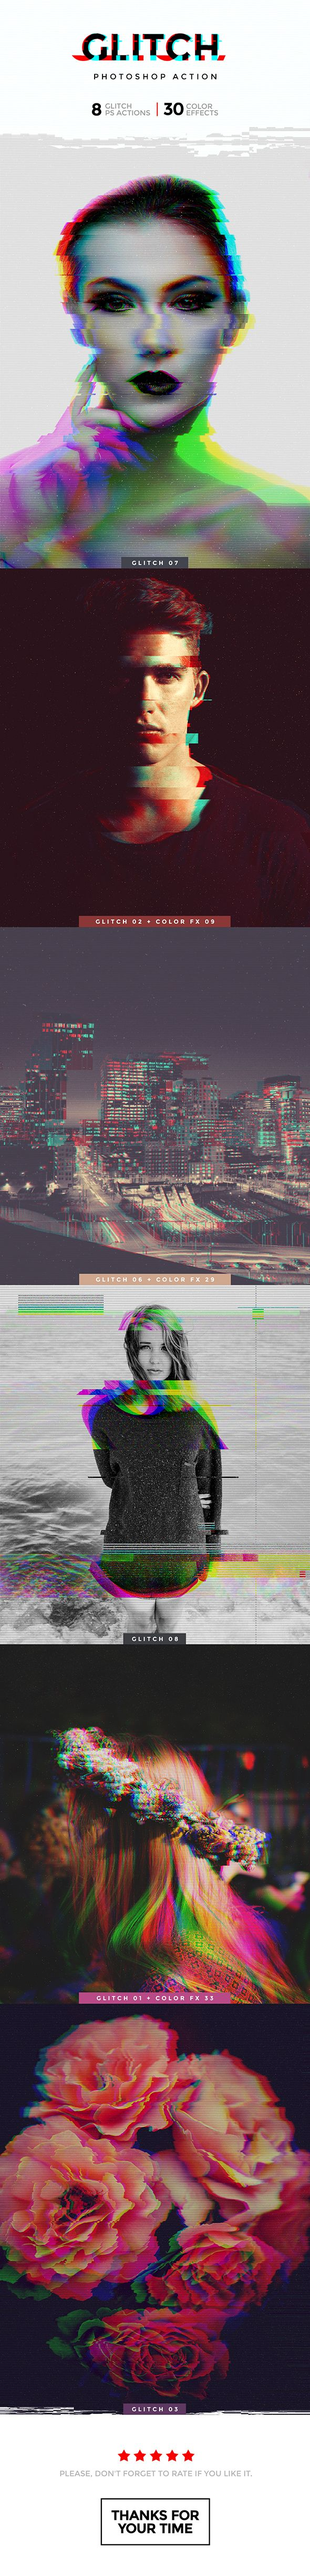 Glitch Photoshop Action — Photoshop ATN #music #pixels • Download ➝ https://graphicriver.net/item/glitch-photoshop-action/19144570?ref=pxcr